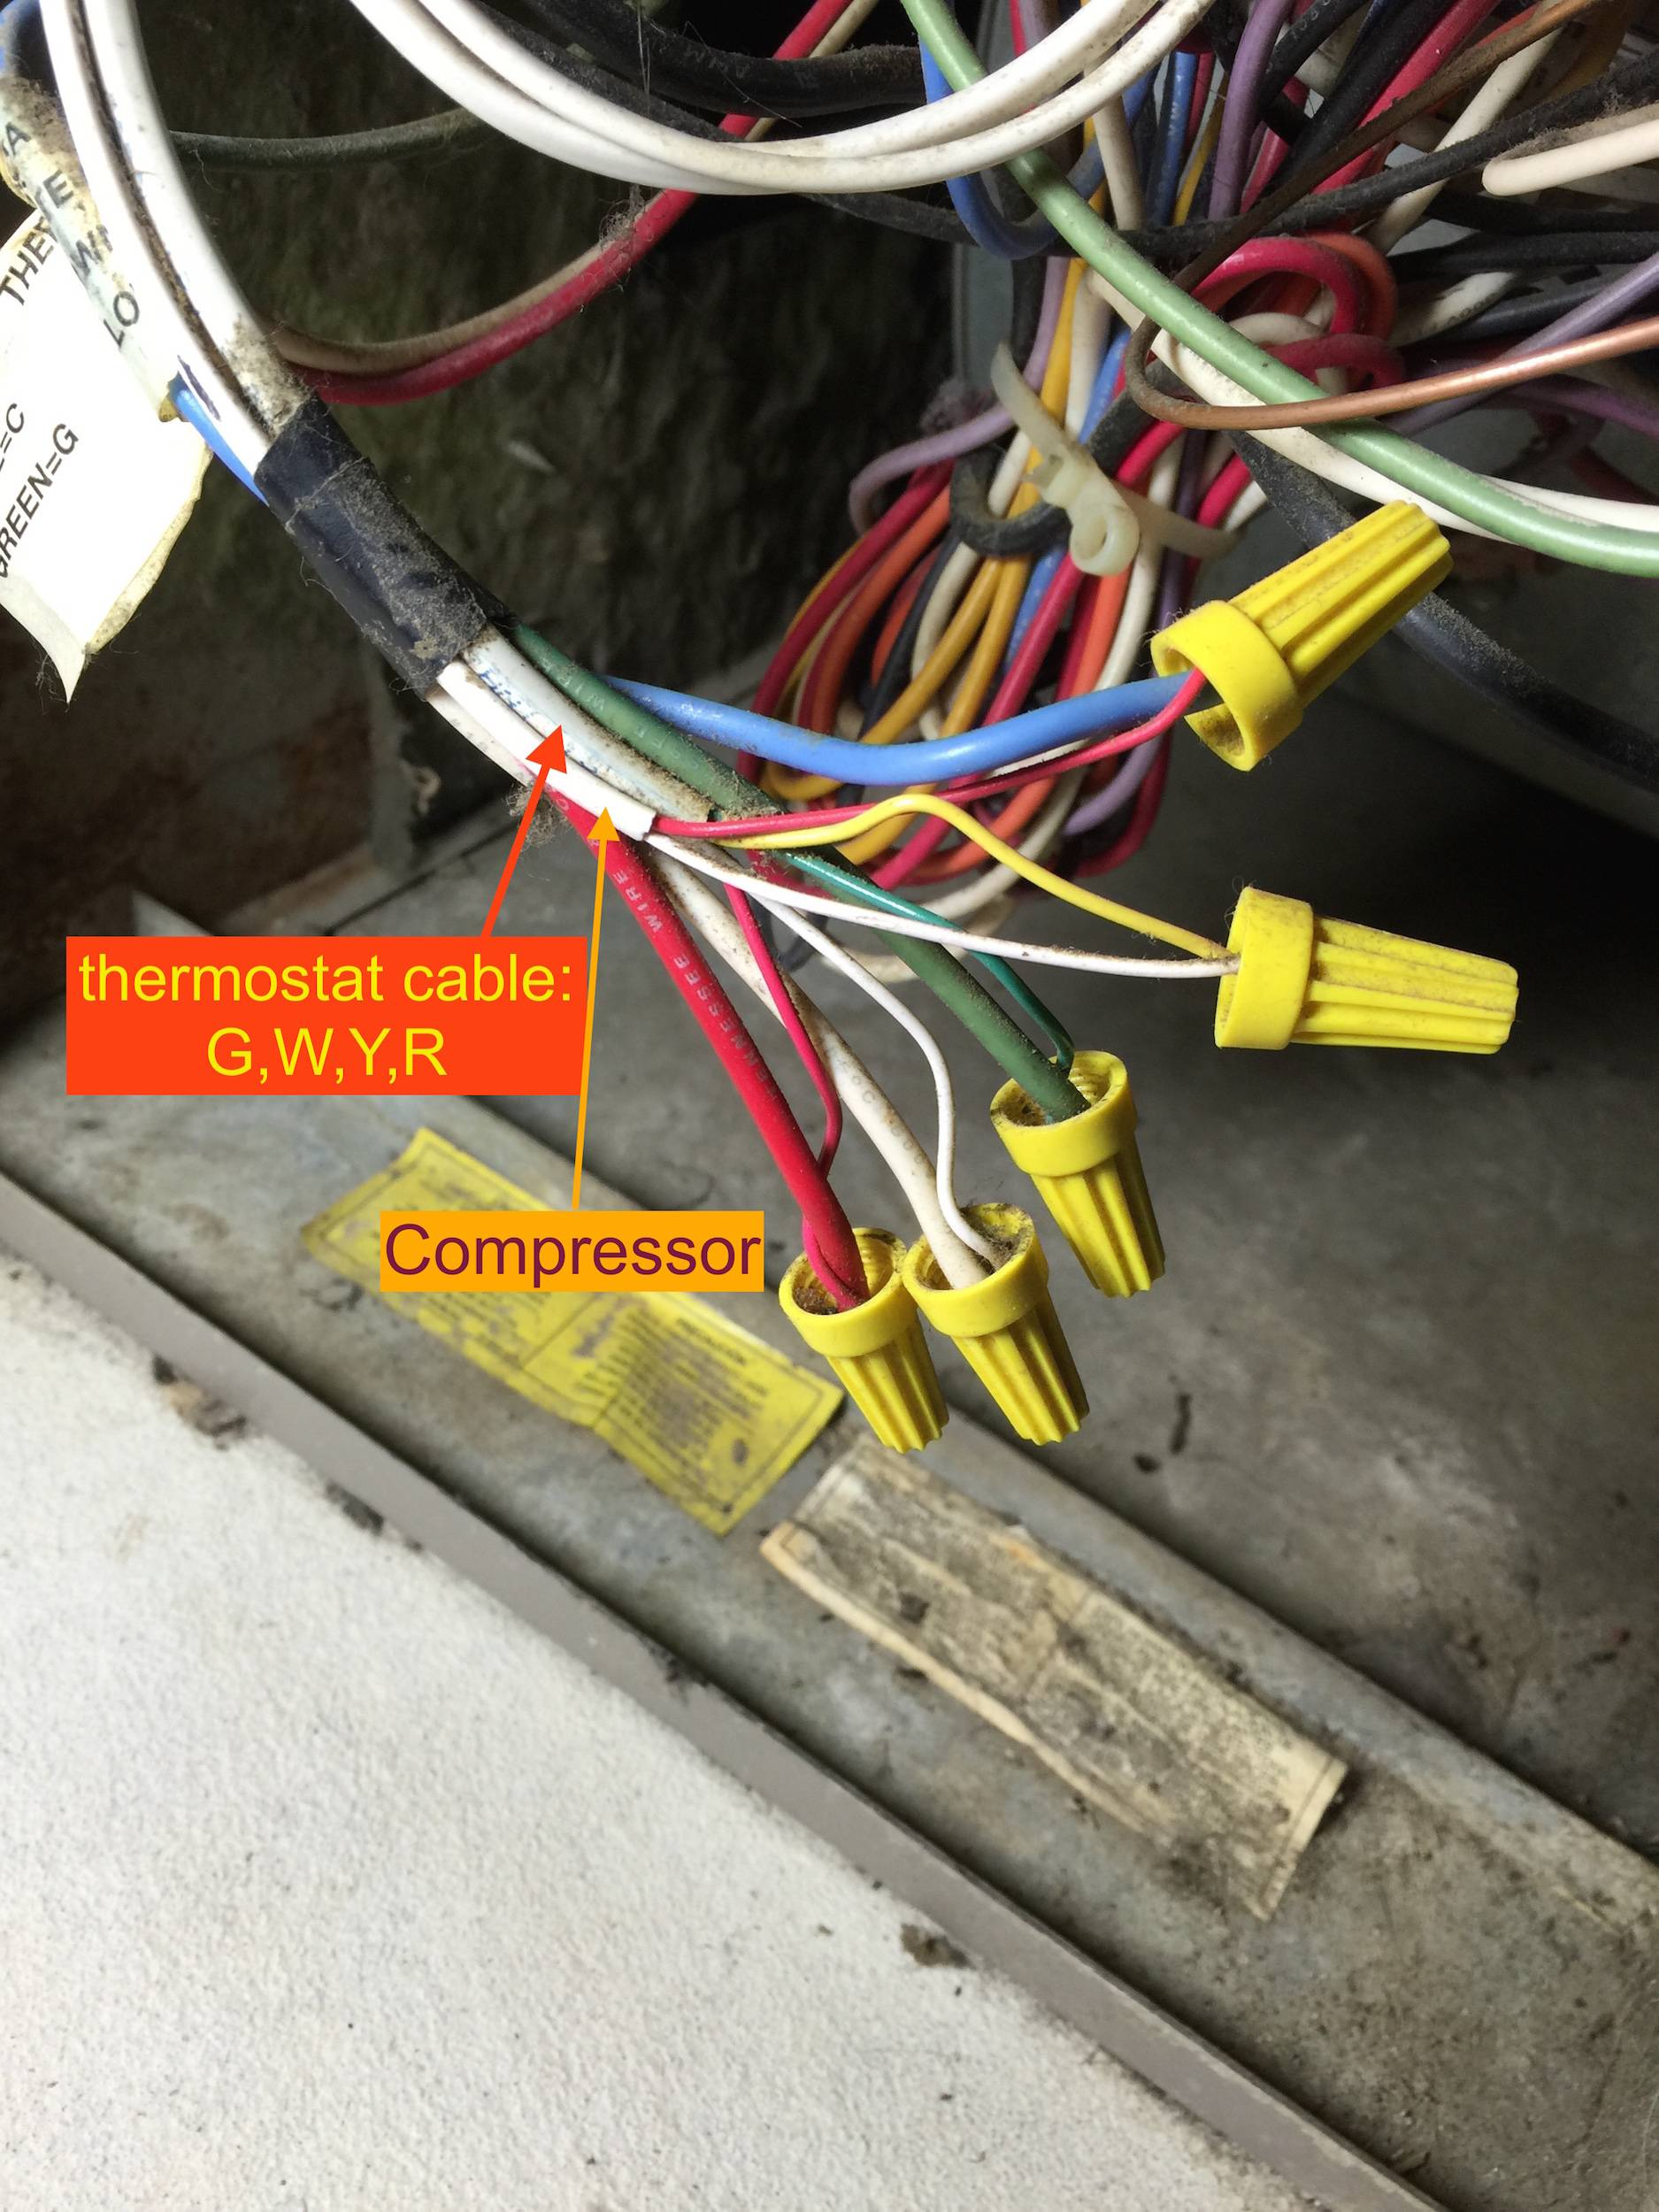 3 wire thermostat wiring diagram 2006 cbr600rr adding venstar add-a-wire to hvac - home improvement stack exchange